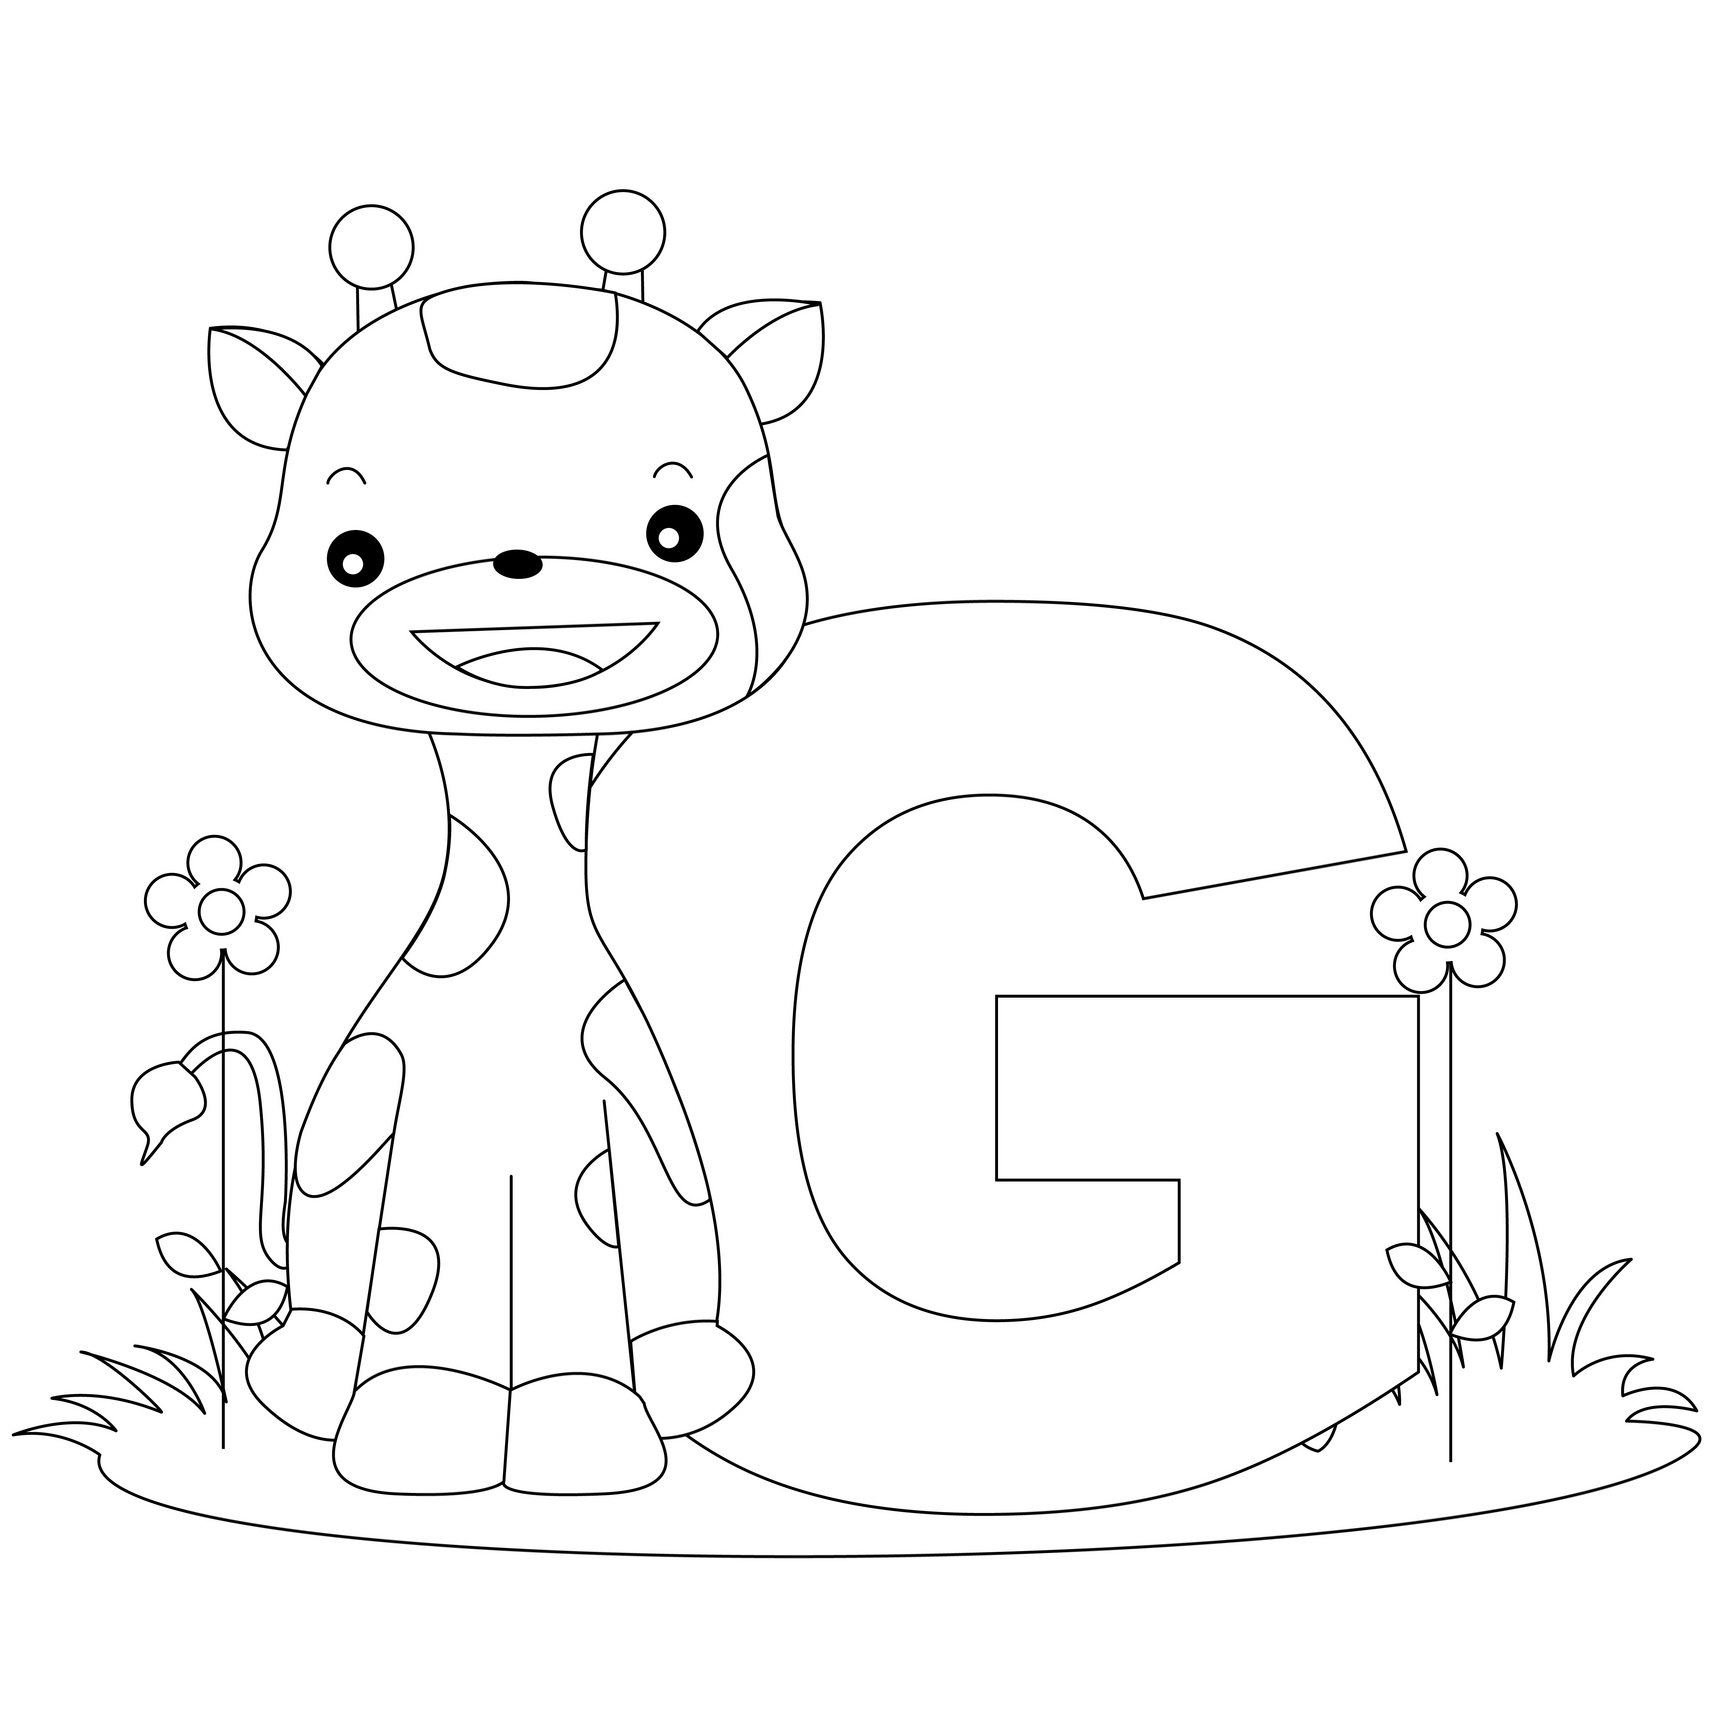 Letter G Coloring Page 11 #9625 - Free Printable Letter G Coloring Pages